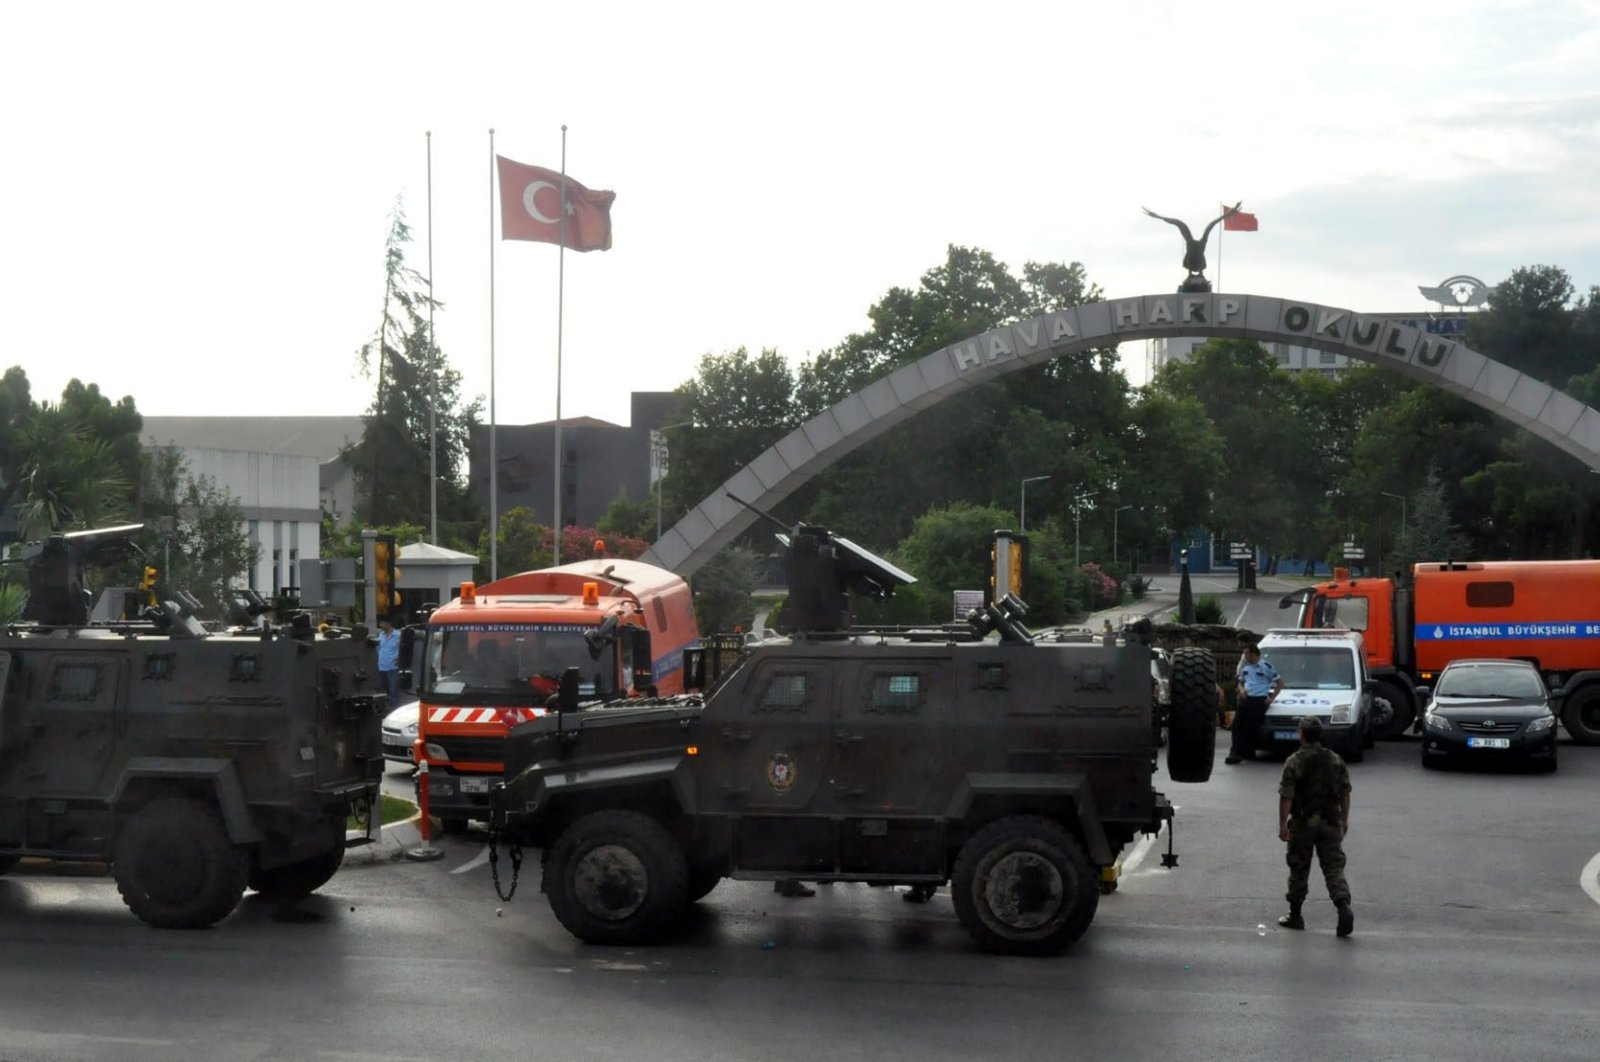 Police vehicles and trucks block the entrance of Air Forces Academy in Istanbul after the coup attempt, Turkey, July 18, 2016. (DHA PHOTO)